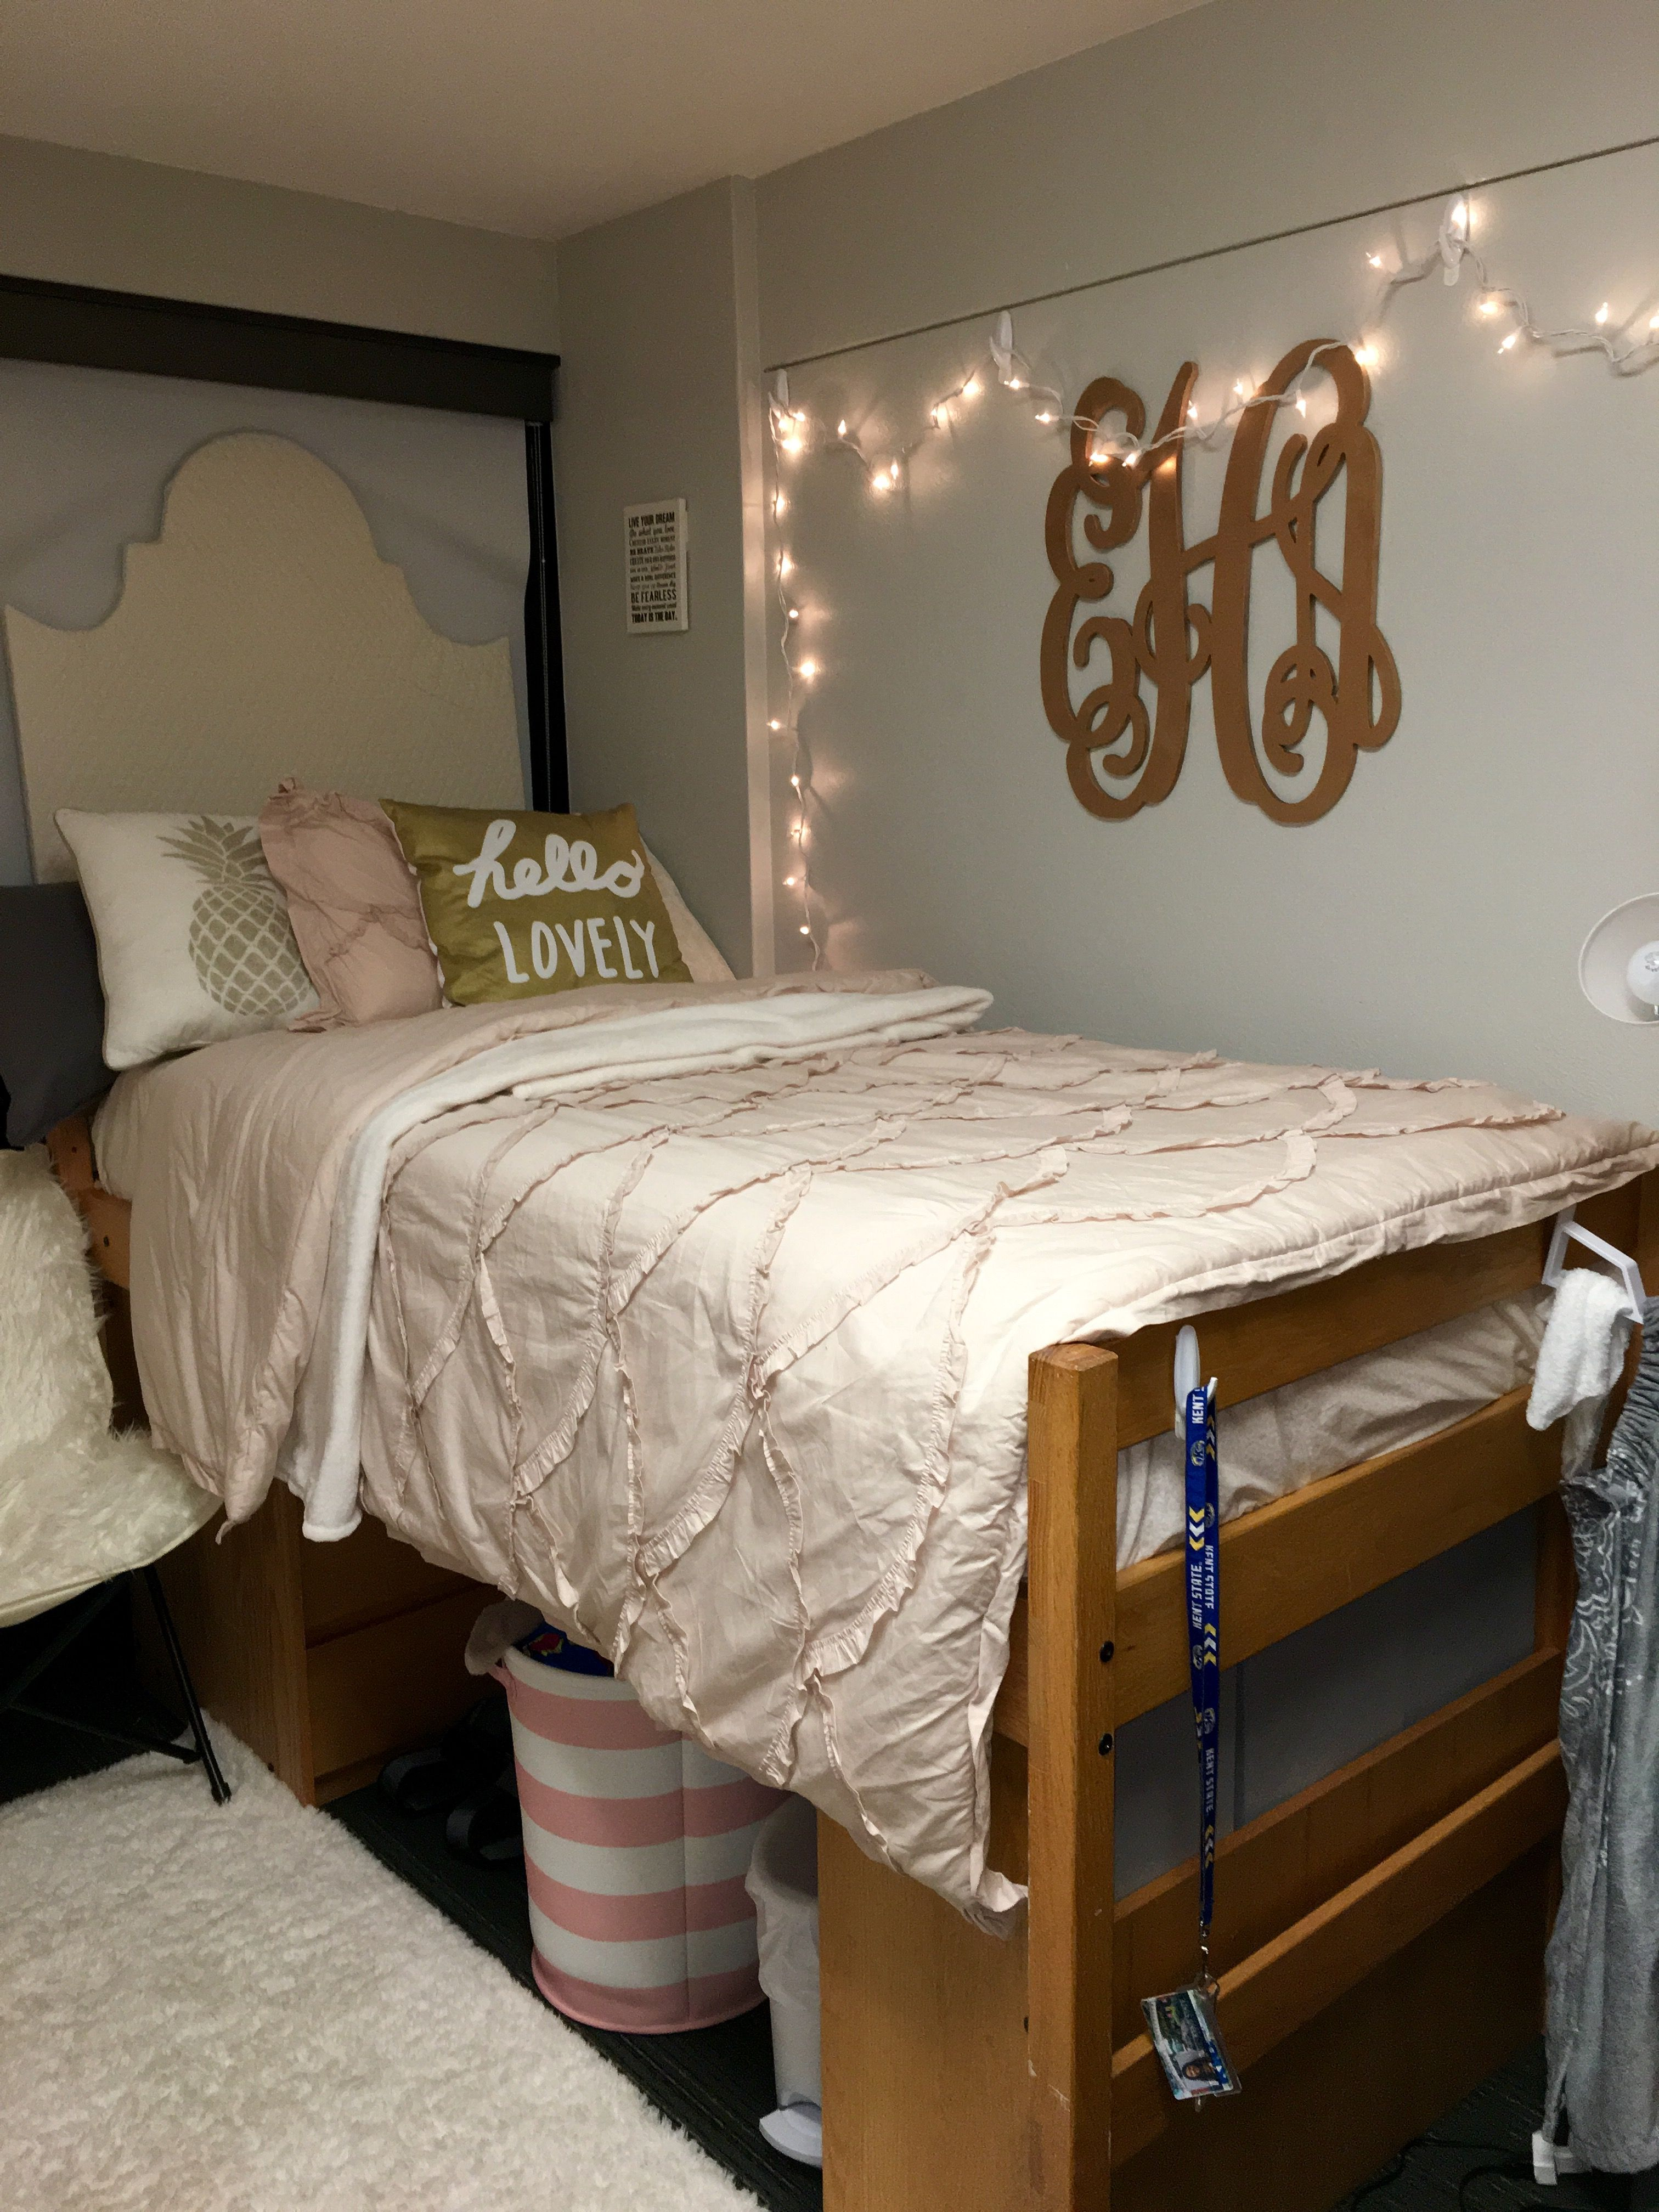 pink and gold dorm room kent state university dorms 19052 | 99df3bd3b053fcb72b857e26e9b6eec7